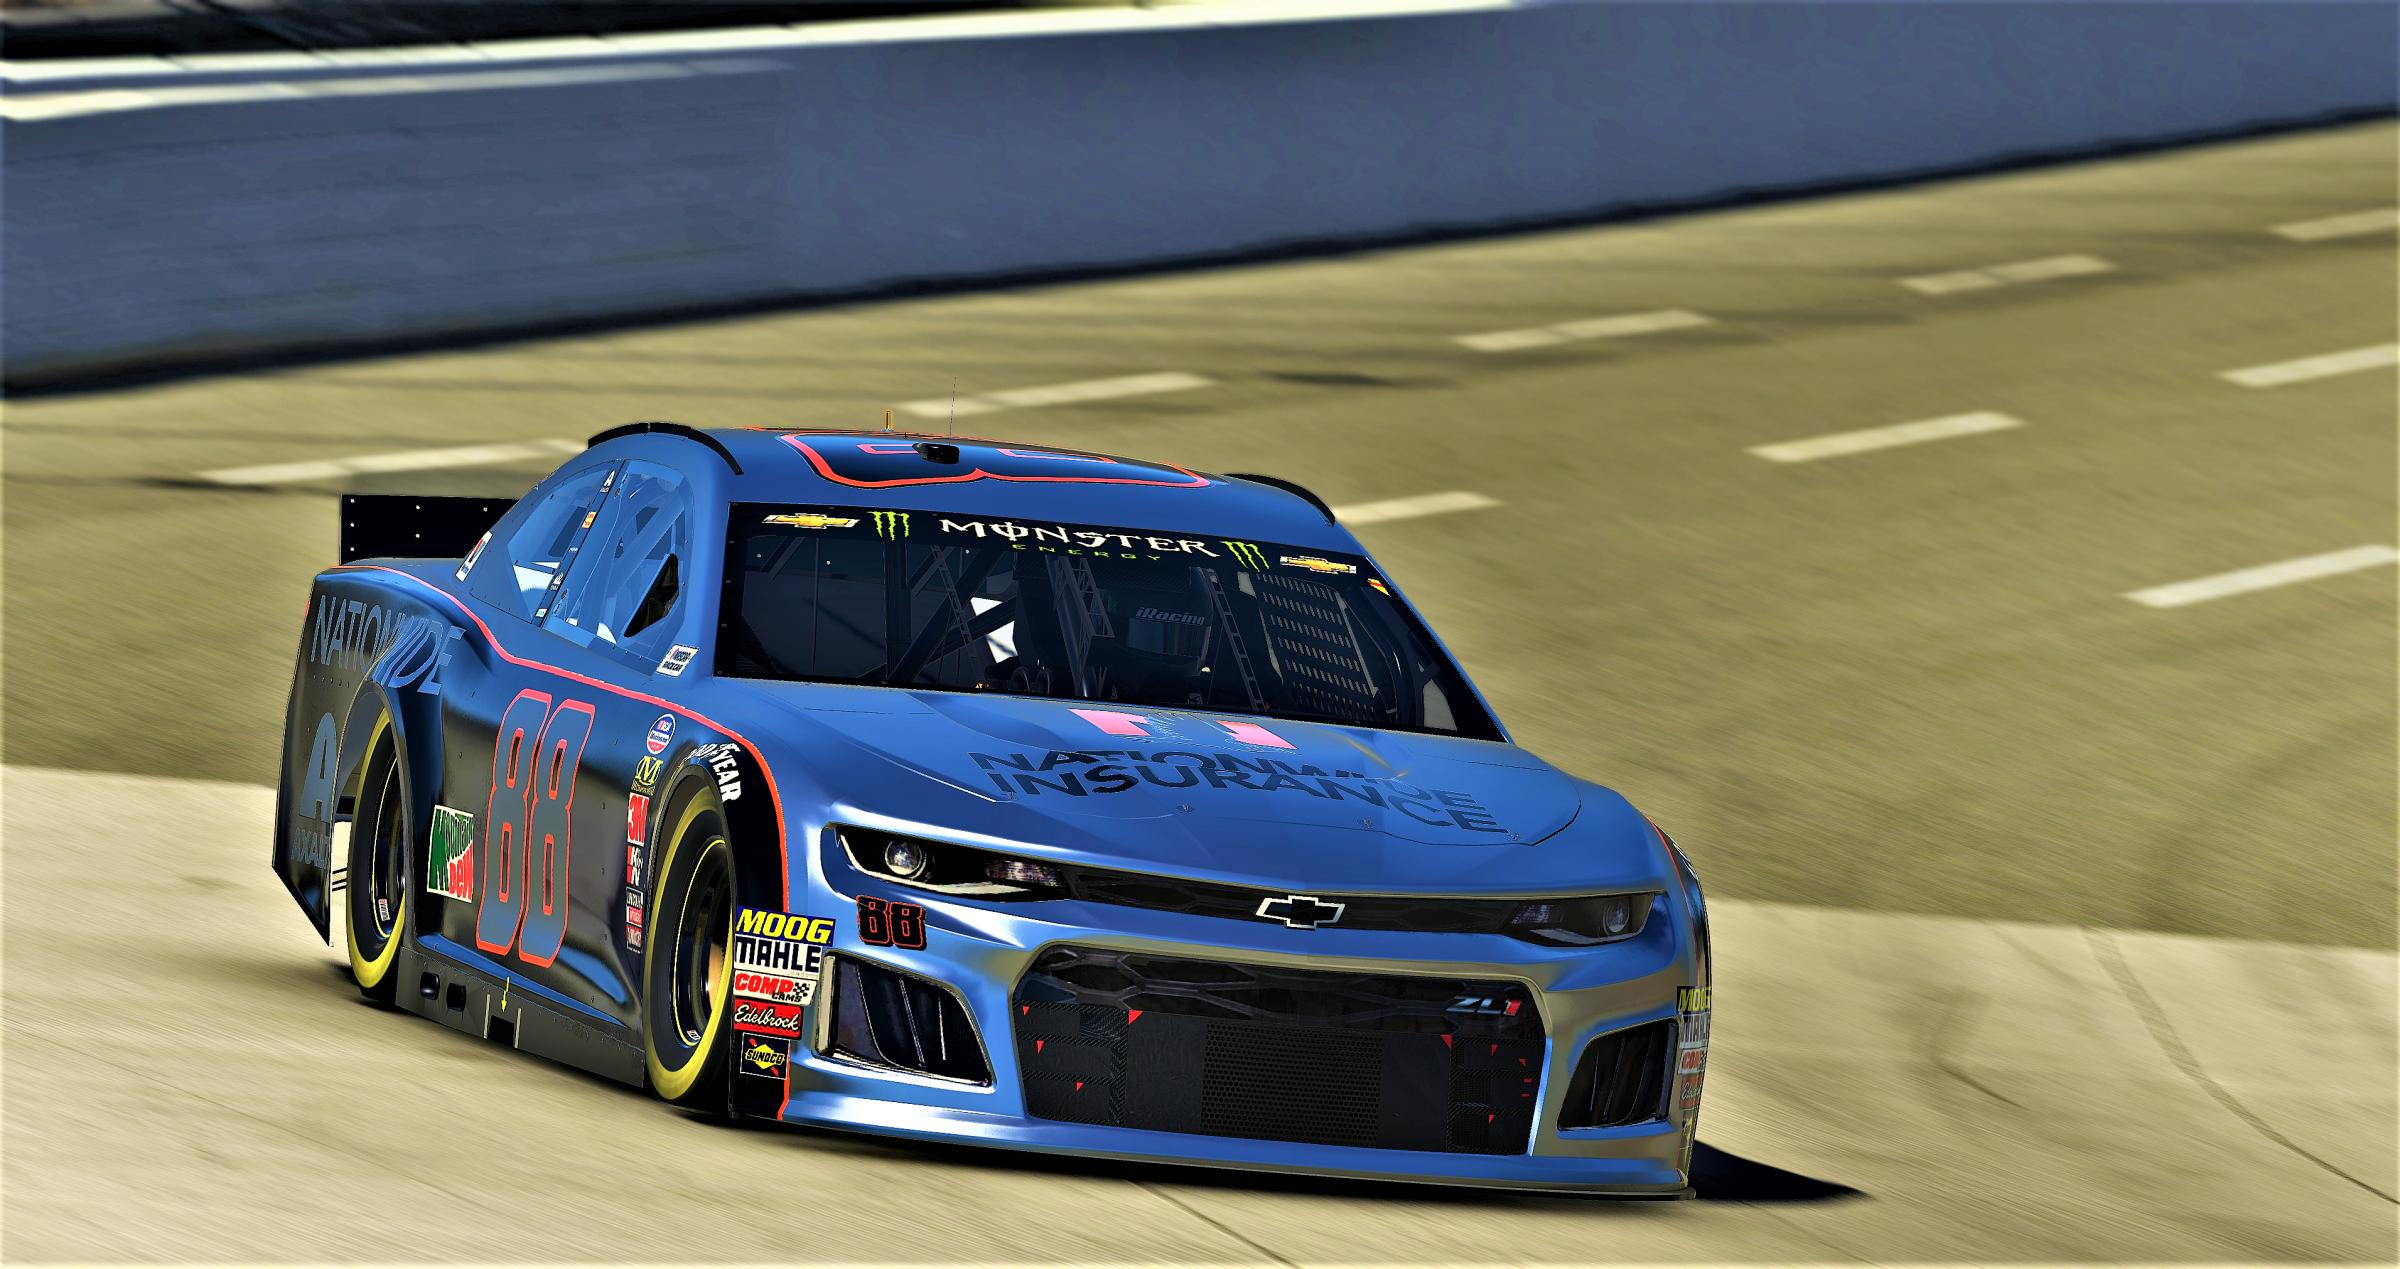 Preview of Dale Earnhardt JR Gray Ghost - Chevrolet Camaro ZL1 Gen 6  by Cameron Coulby